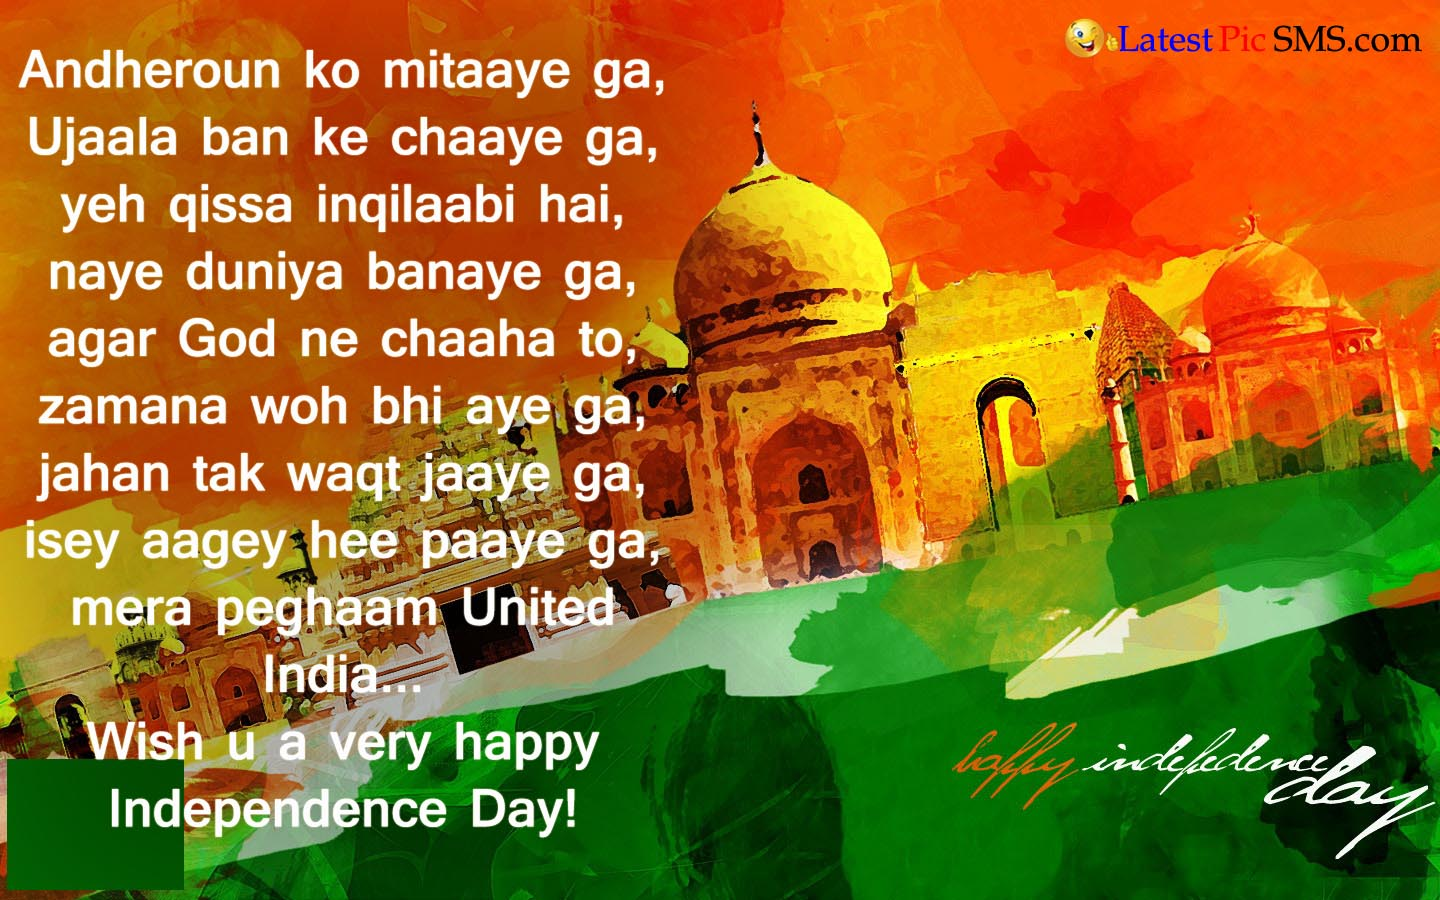 Delhi independence day images quotes